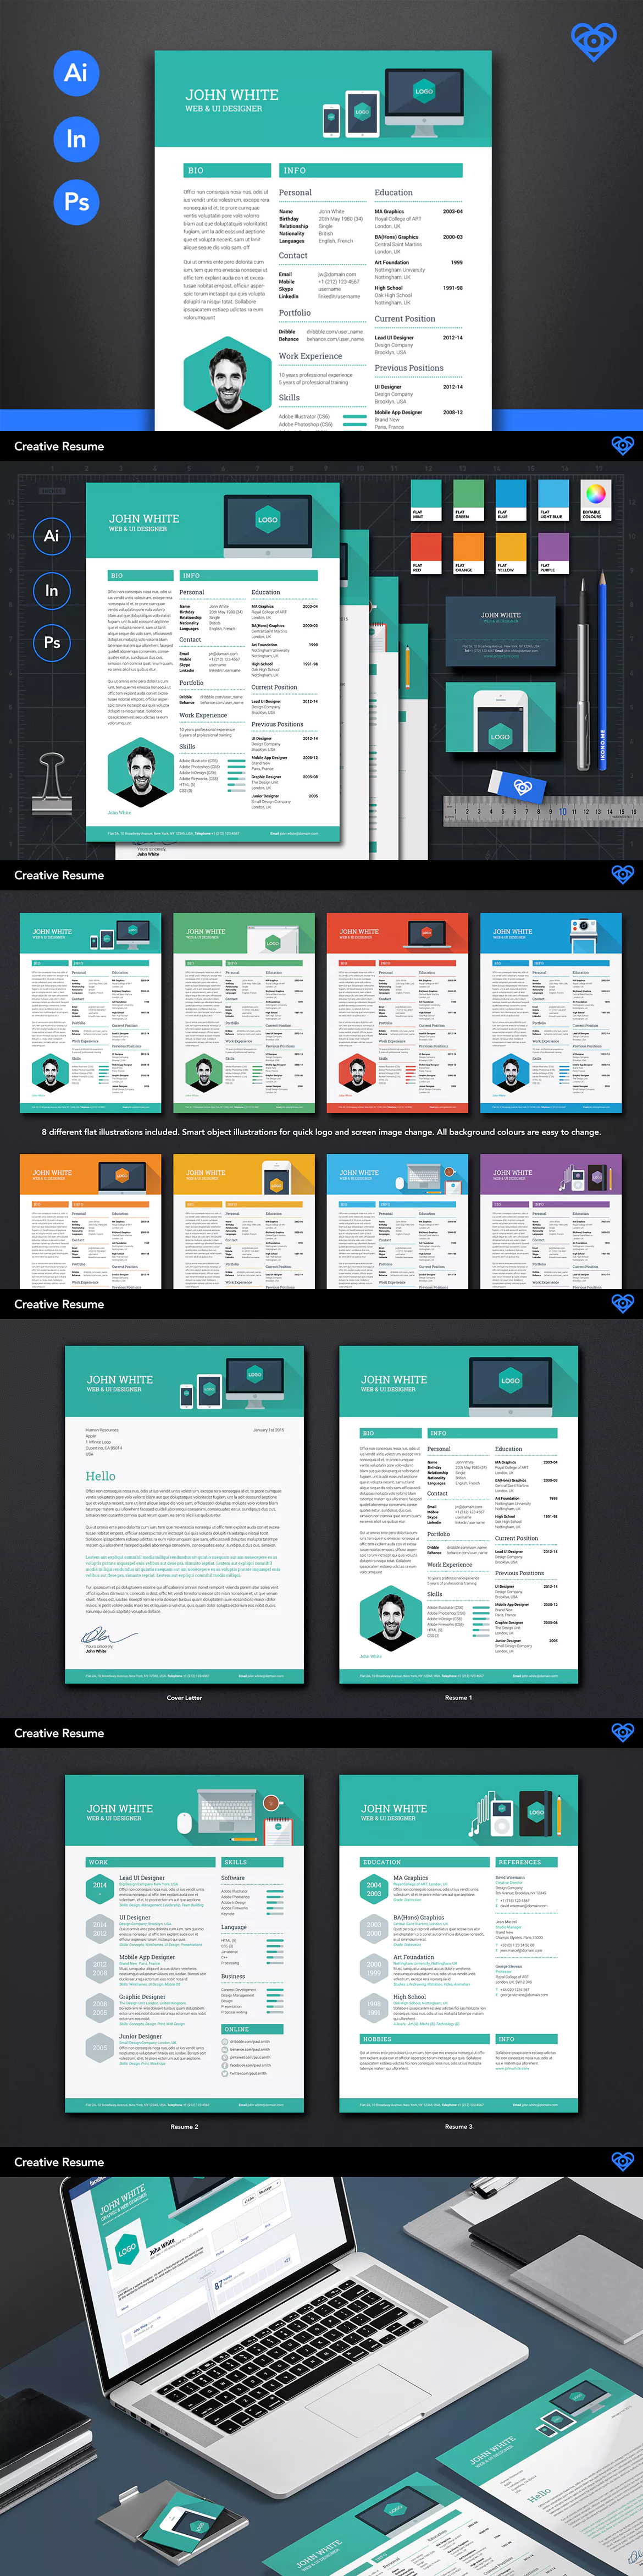 Creative resume by ikonome on envato elements creative